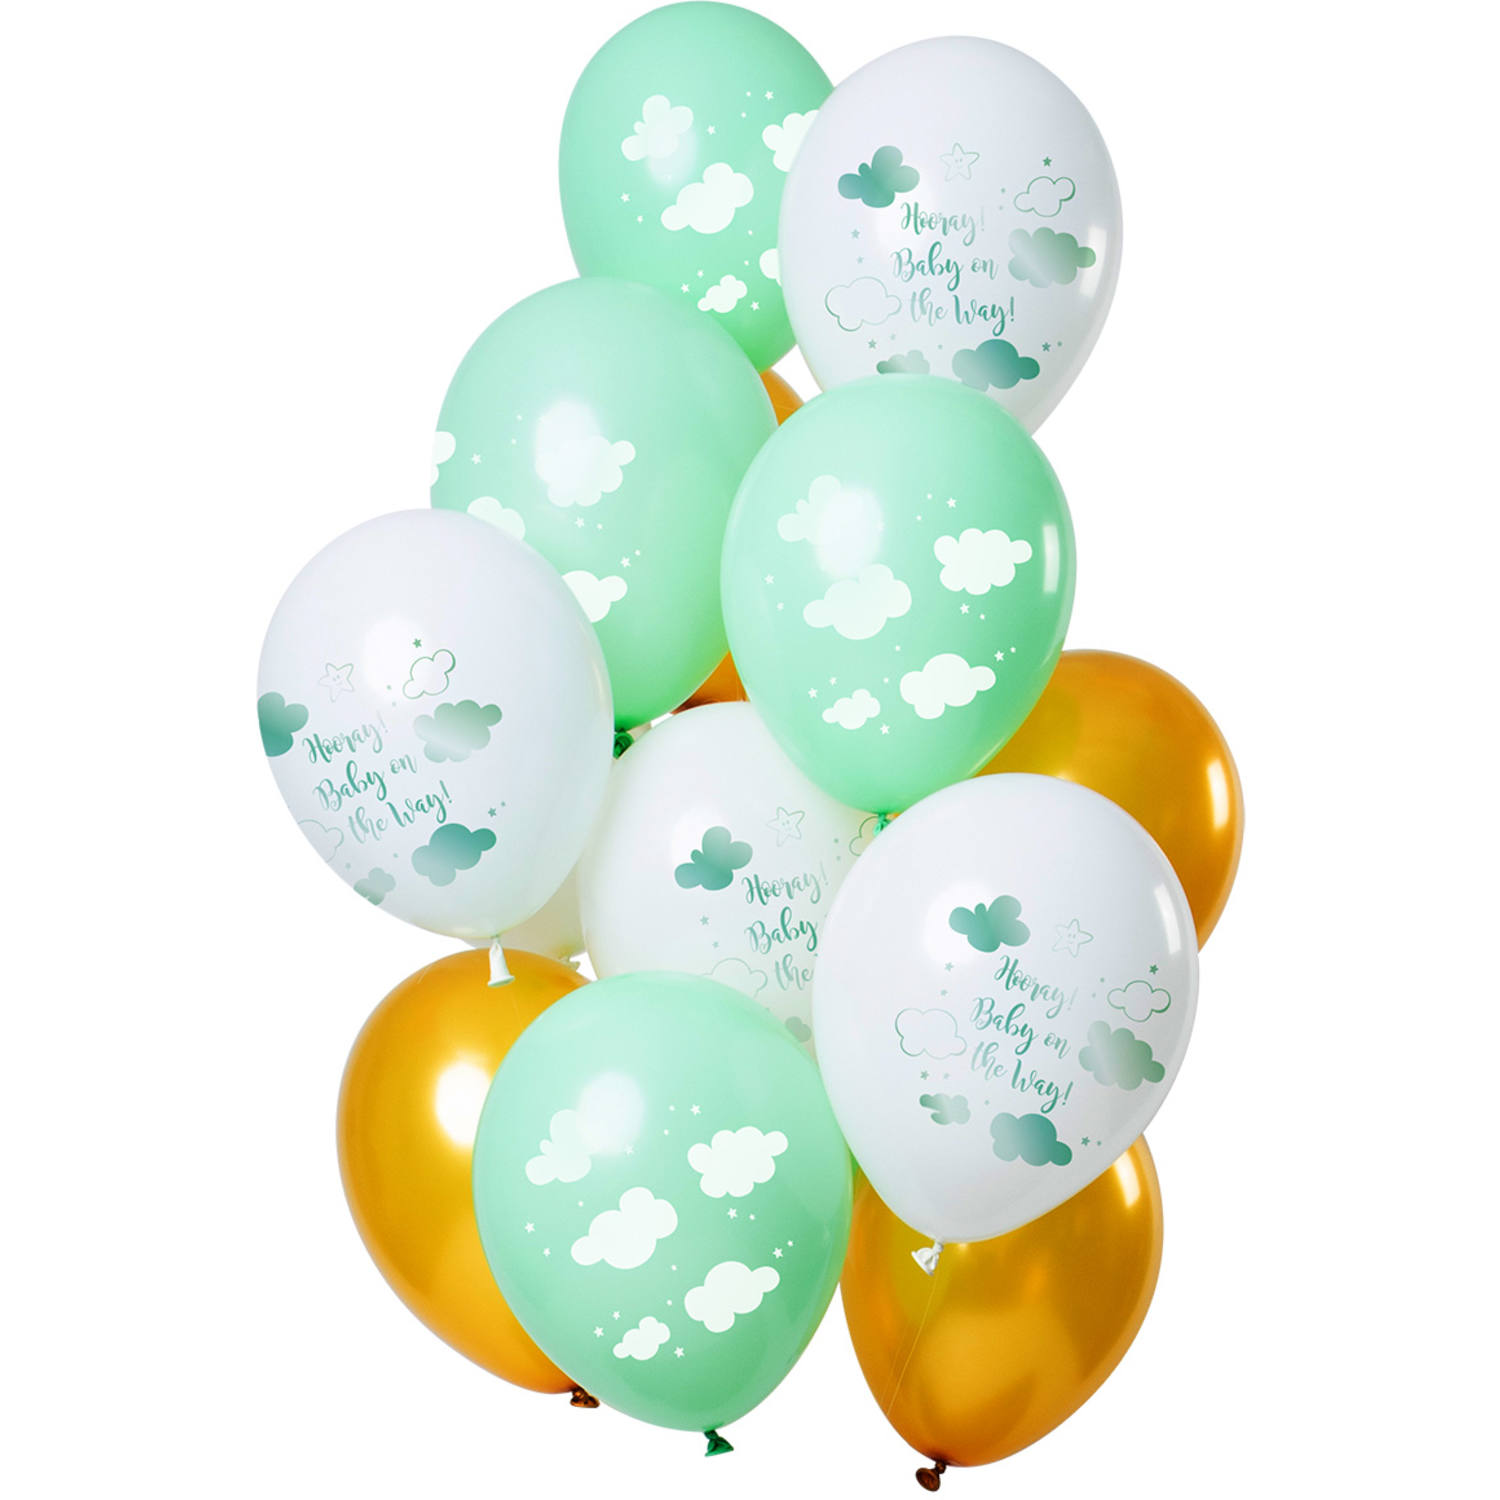 Set Van 12 Ballonnen Baby On The Way Groen Goud - 30cm